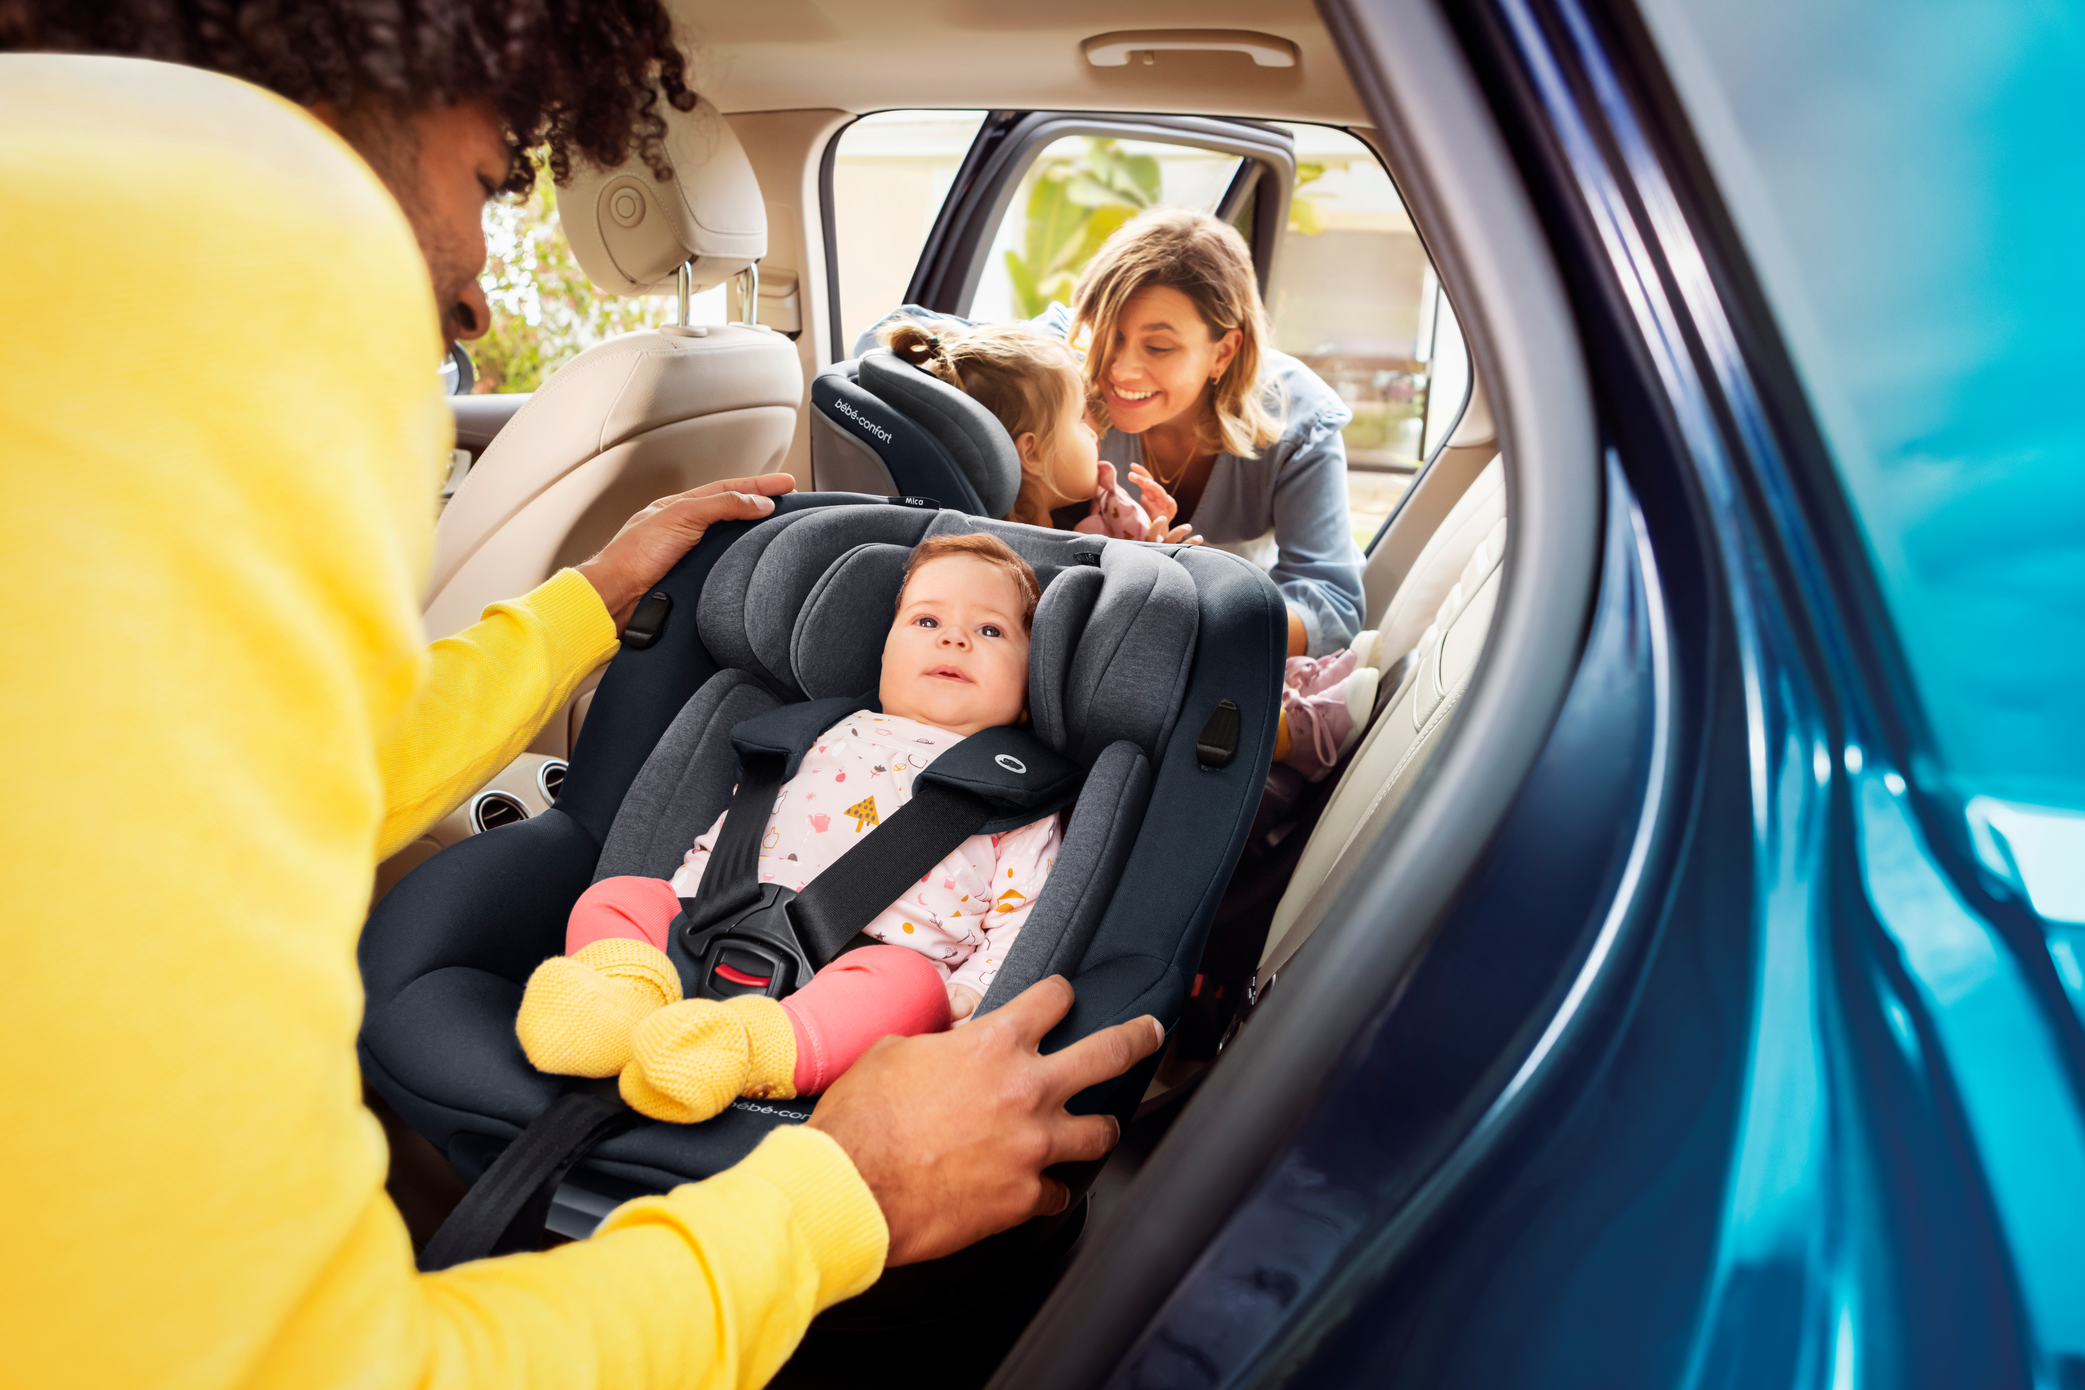 BBC8511_2020_Bebeconfort_carseat_Mica_Lifestyle_Summer_dadputsbabyinseattoddlerandmombackground_Landscape_RGB